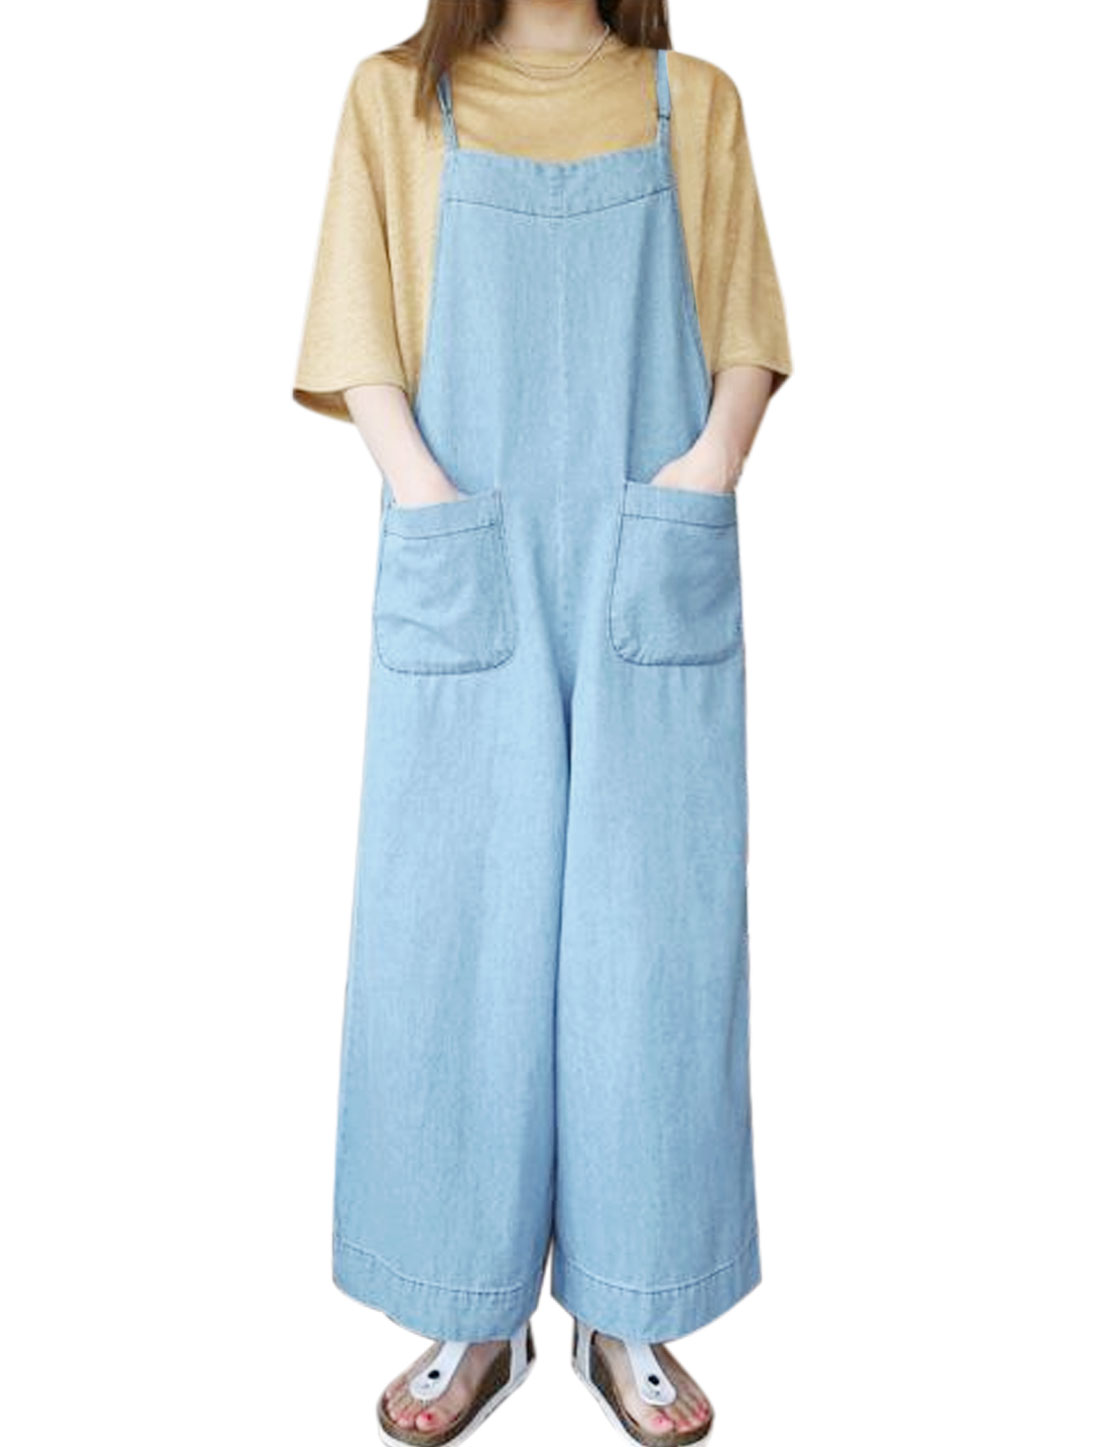 Women Pockets Front Wide Leg Loose Suspender Pants Blue M